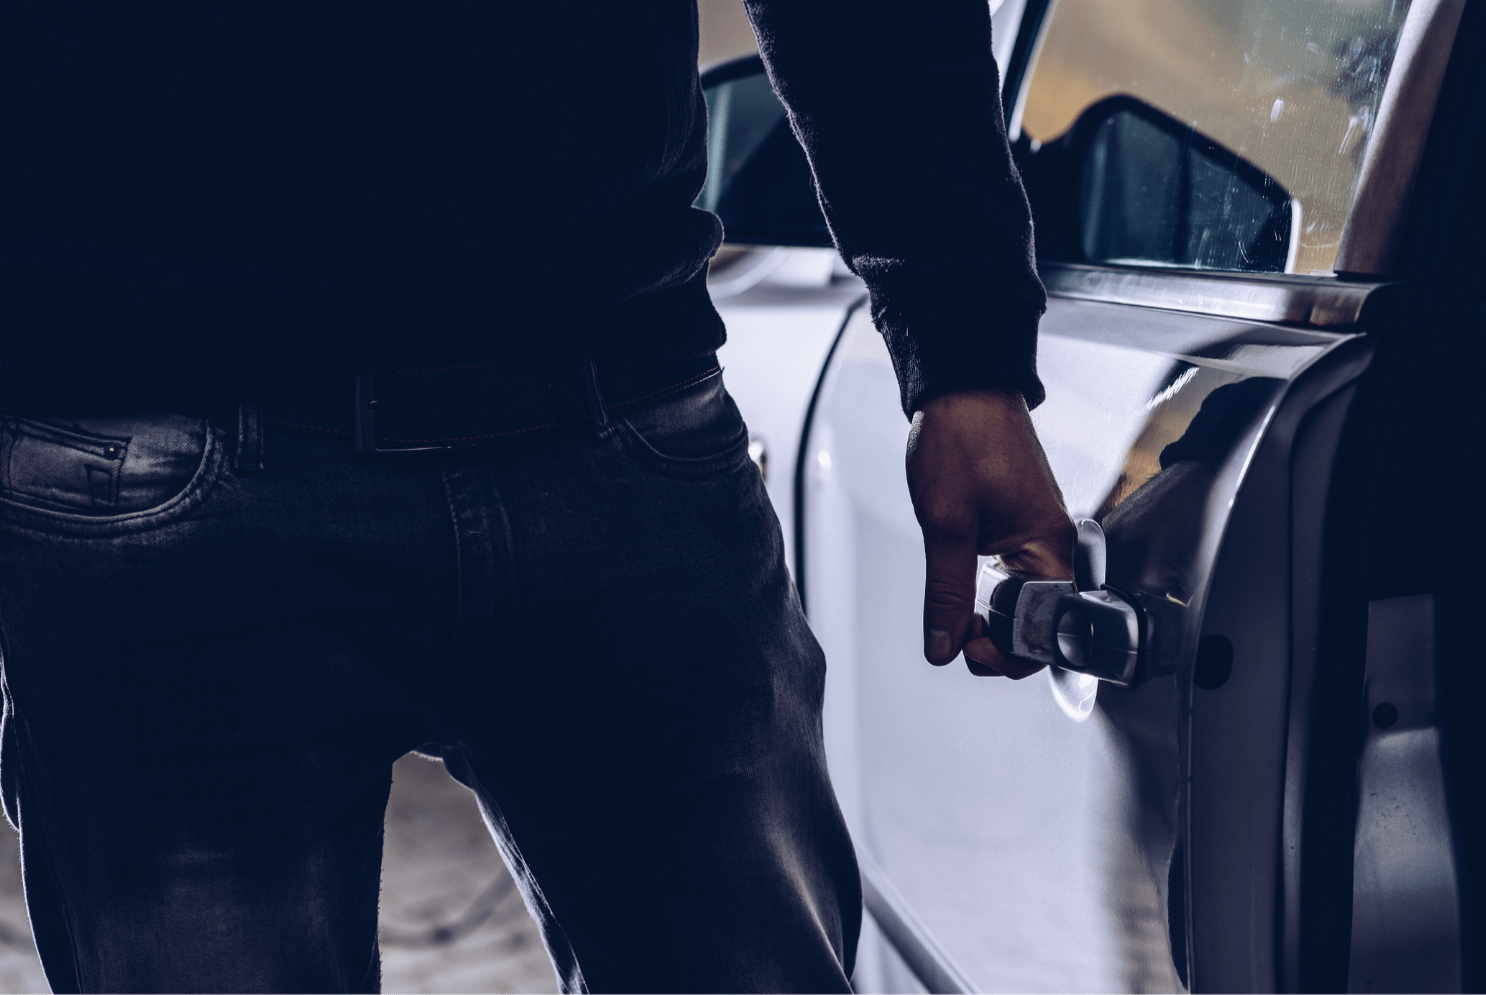 With Vehicle theft continuing to rise, what do you need to know?